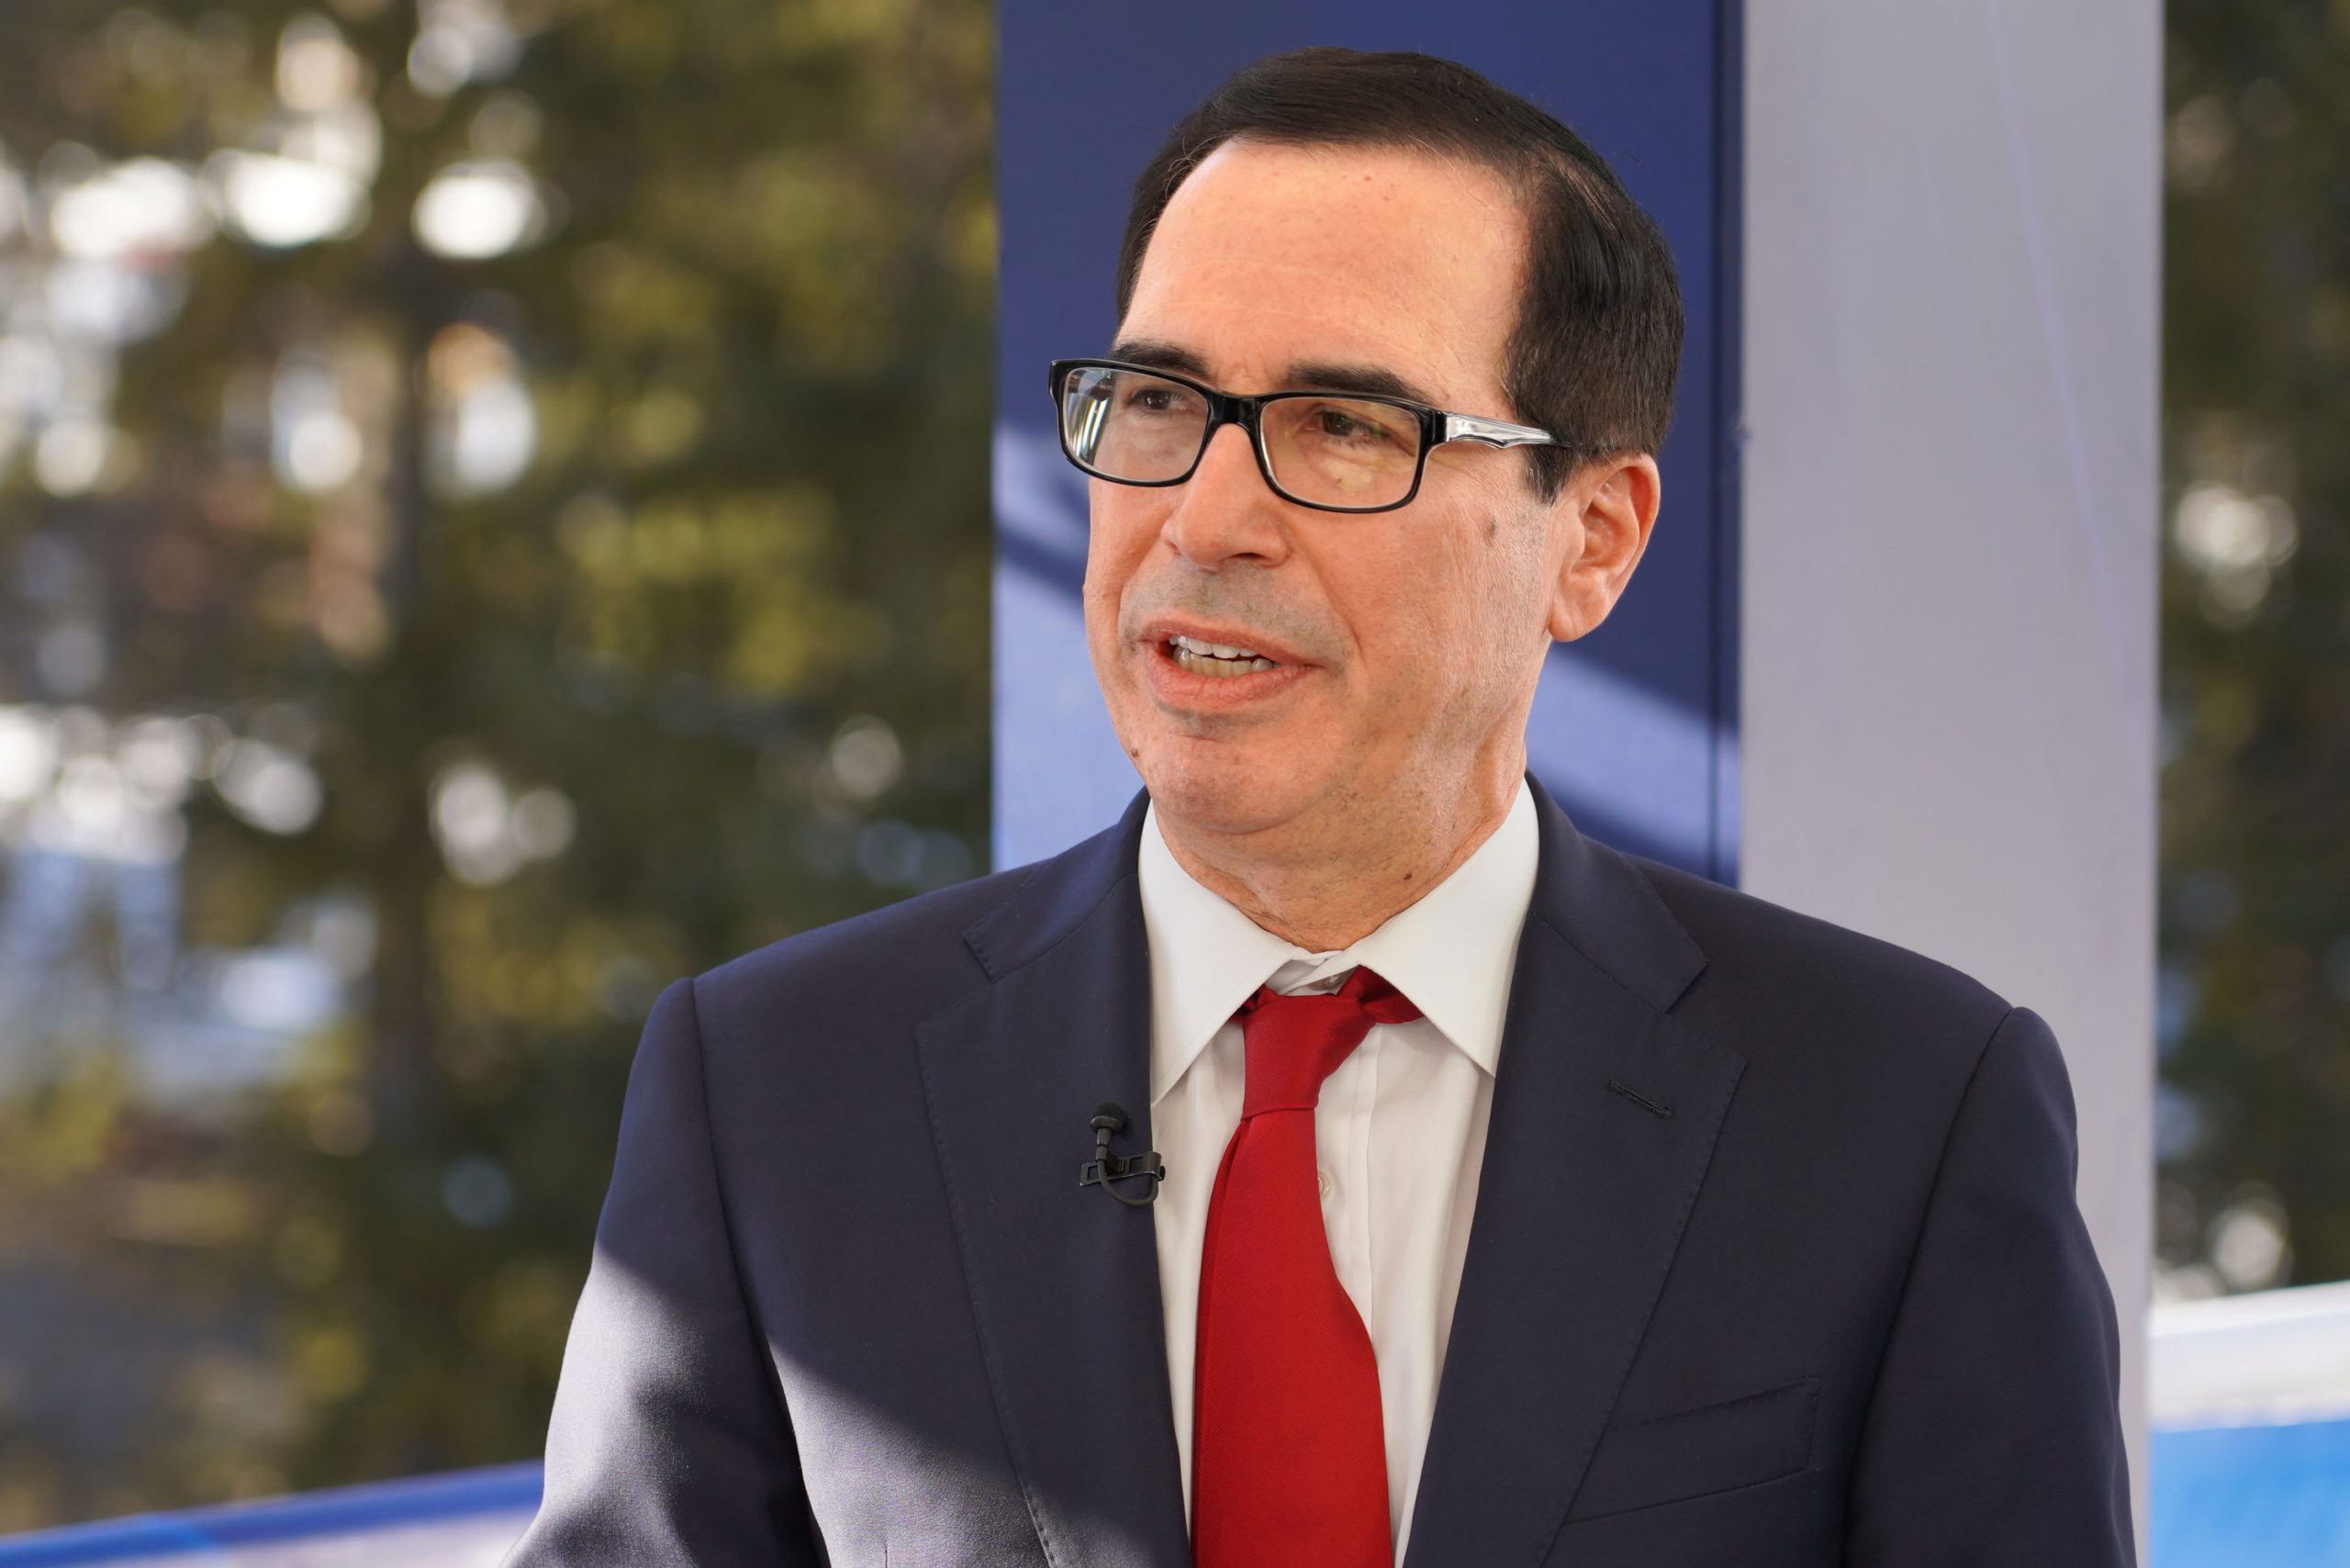 Economic impact of coronavirus will be clearer in 'three or four weeks,' Mnuchin says